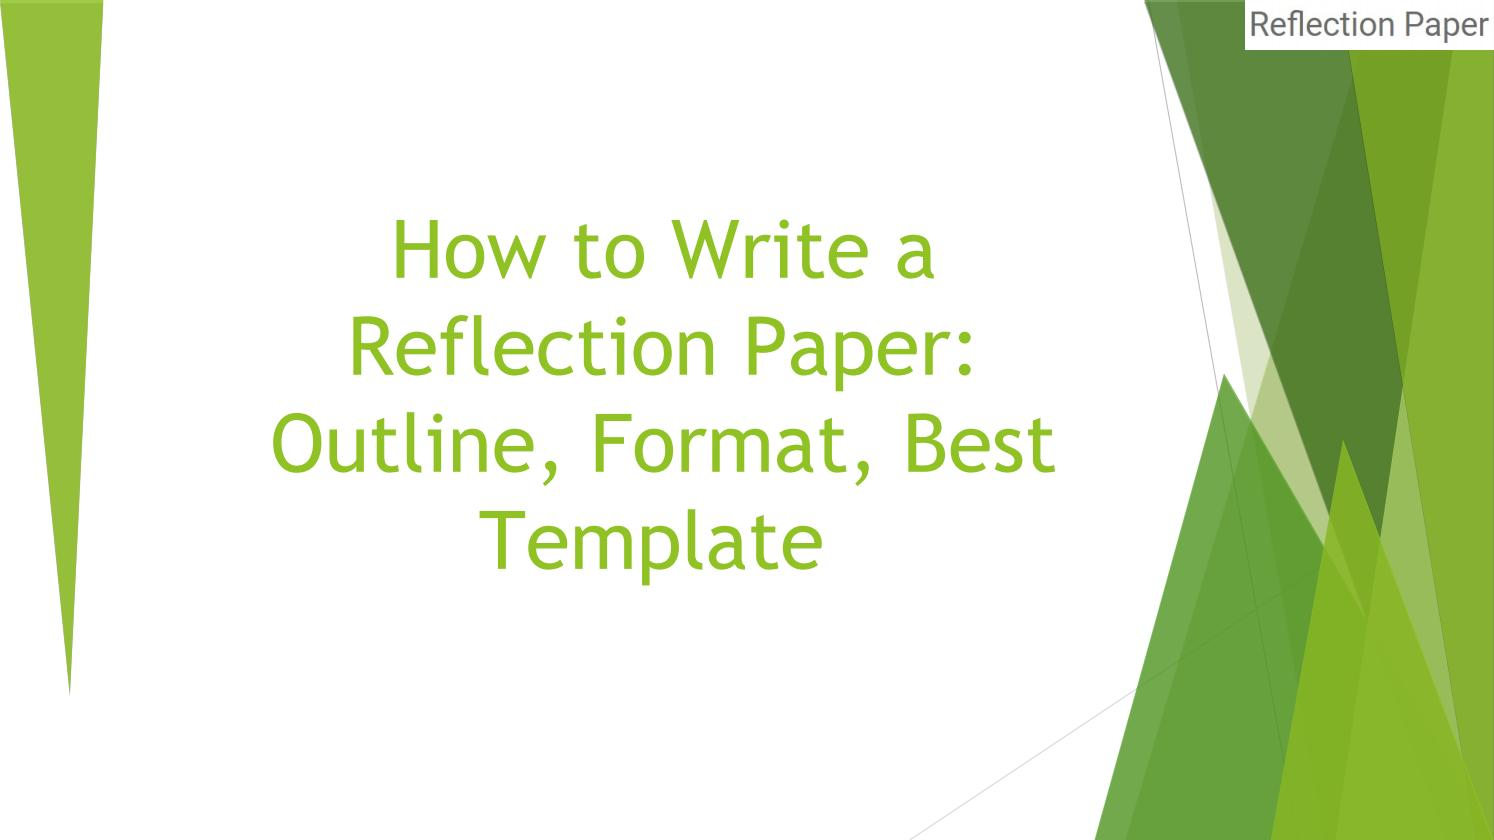 009 essay example presentation outline template